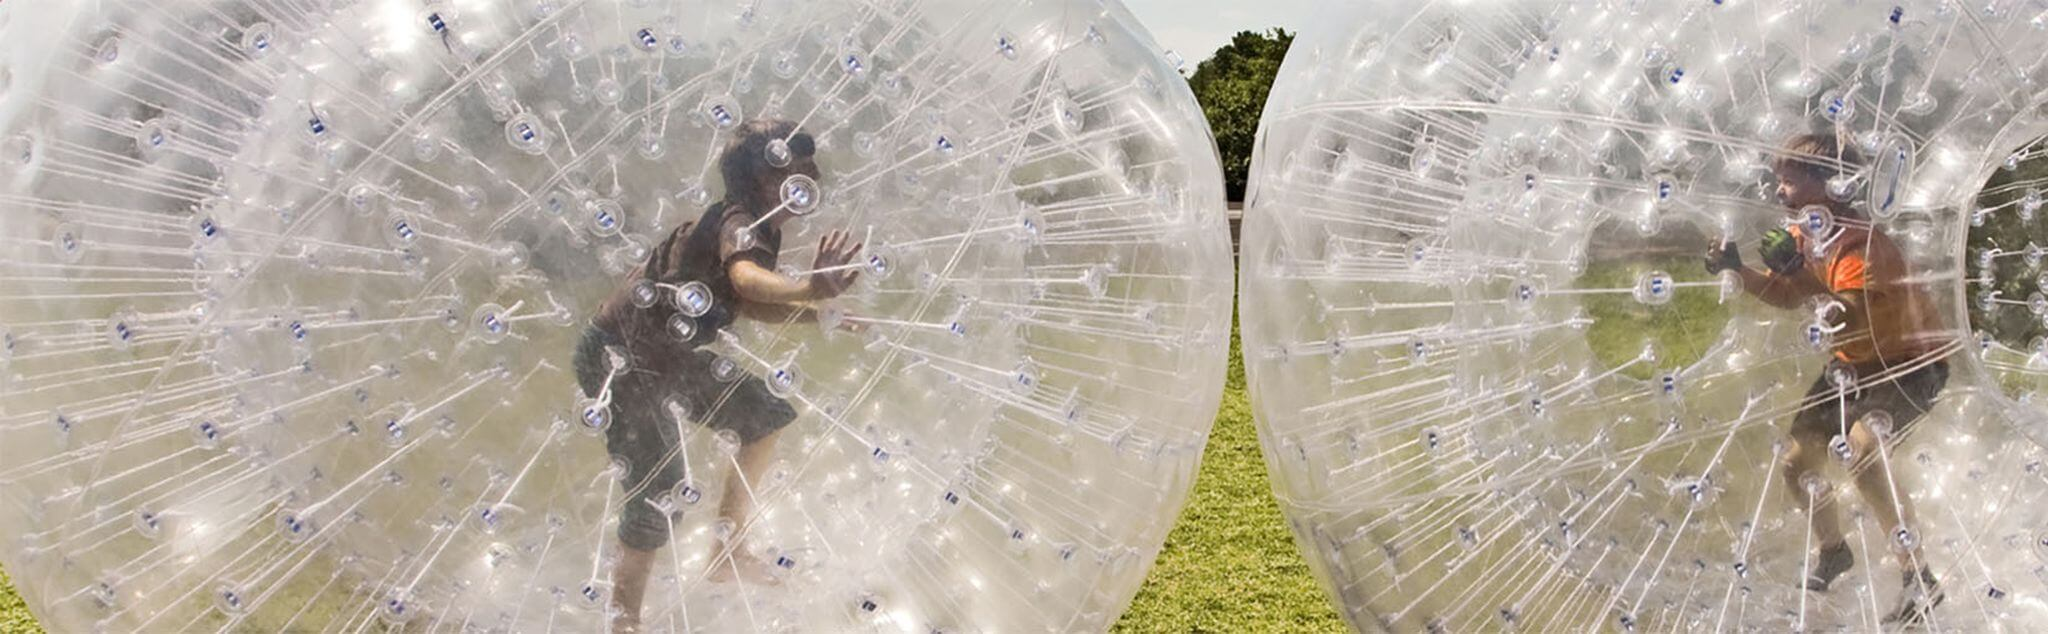 Bubble Football a Guadalajara